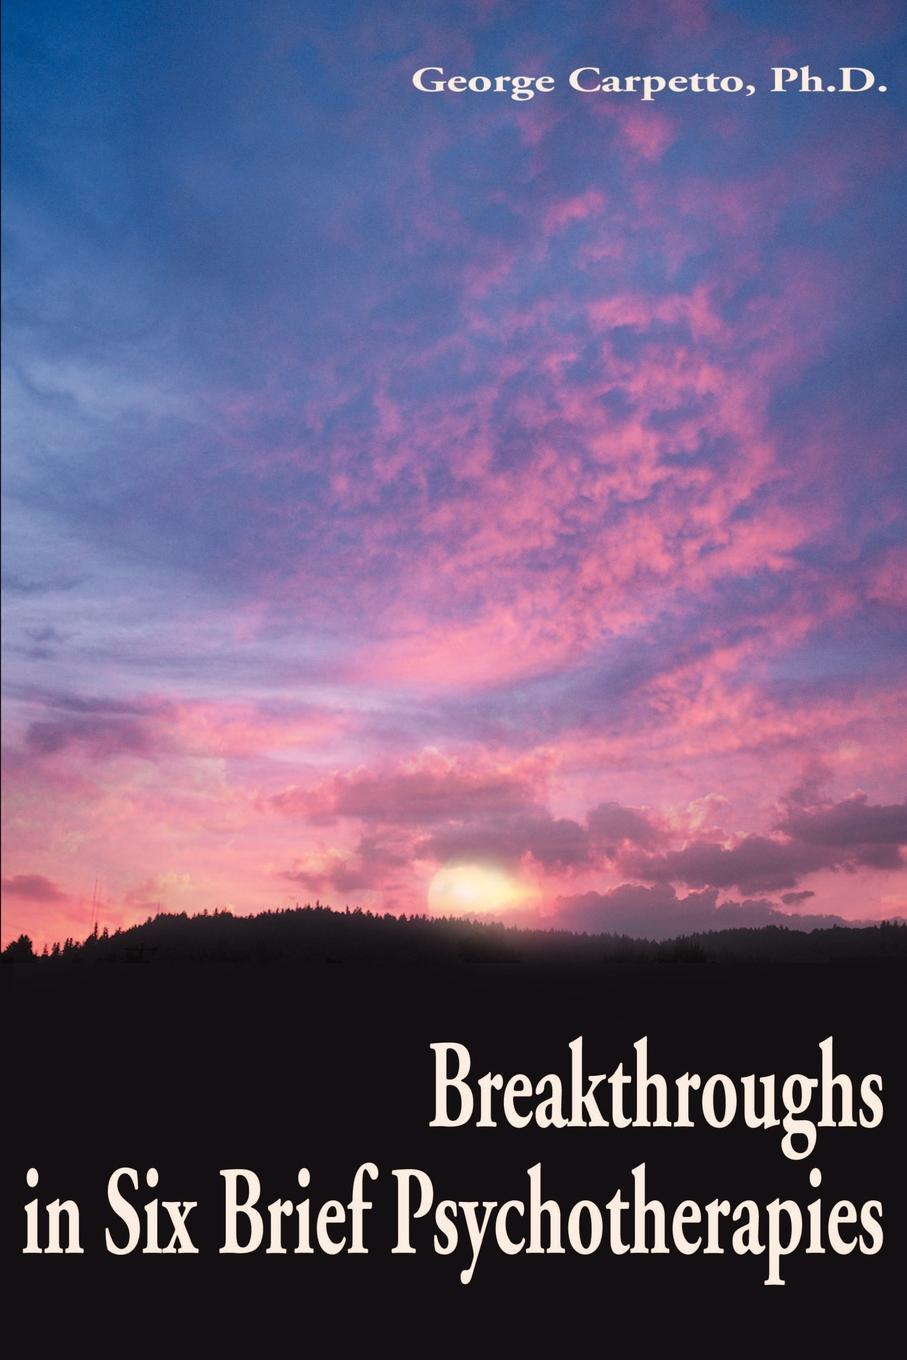 Breakthroughs in Six Brief Psychotherapies. George Carpetto